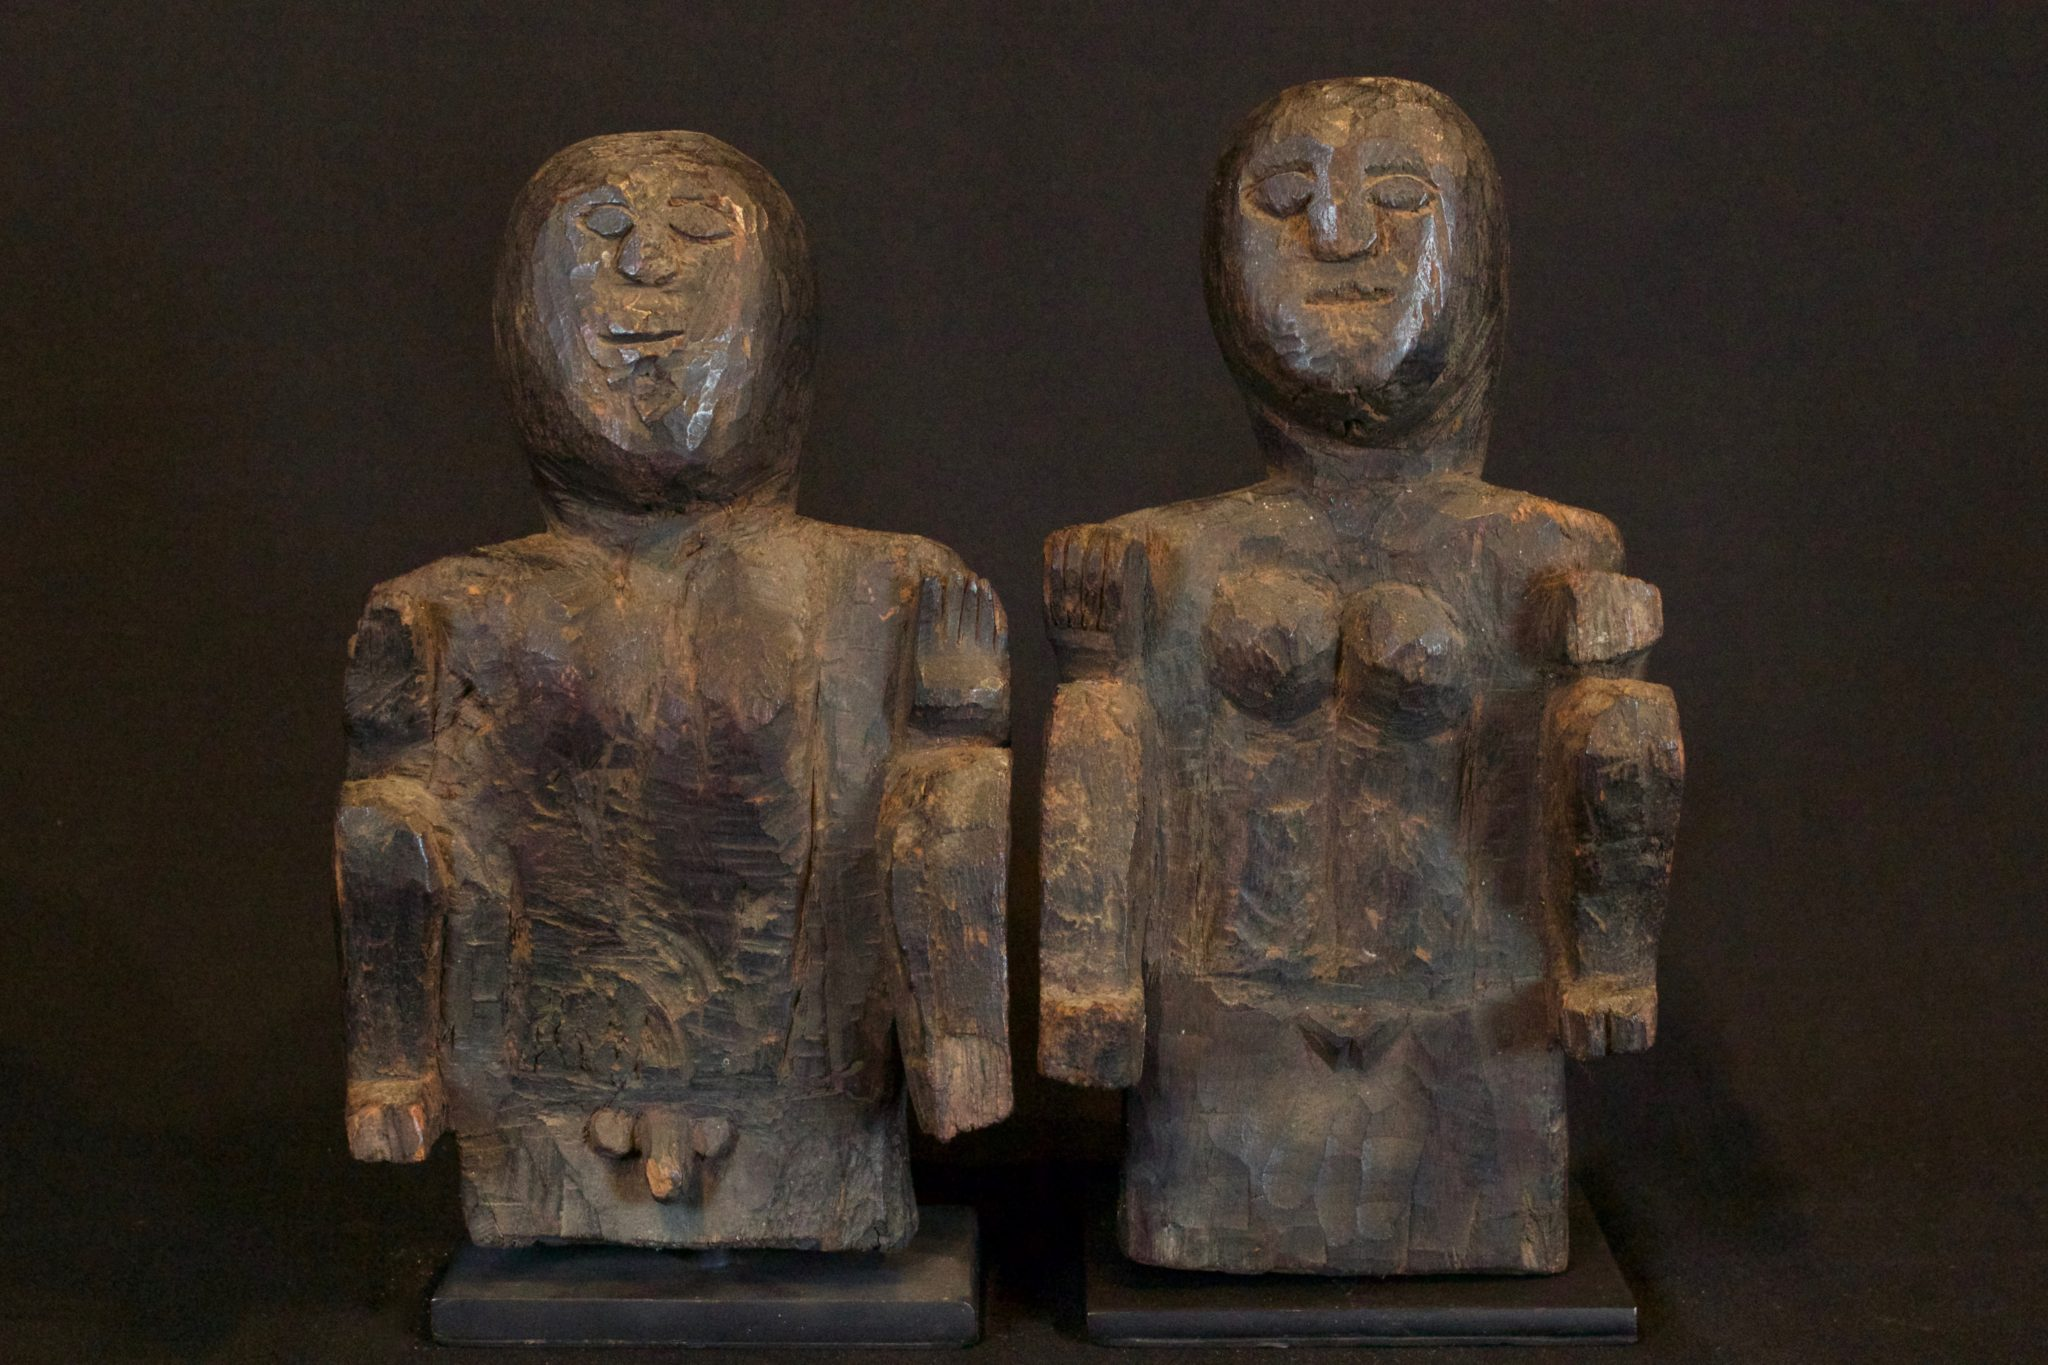 "Ancestral Offering Figures, Timor Island, Lesser Sunda Islands, Indonesia, Anakalang tribe, Early to mid 20th c, Wood. Used by shaman for healing rituals. (left, male fig - 8 ½"" x 5"" x 3 ½""); (right female fig -9"" x 4 ¾"" x 4""), $875. (sold as pair)"